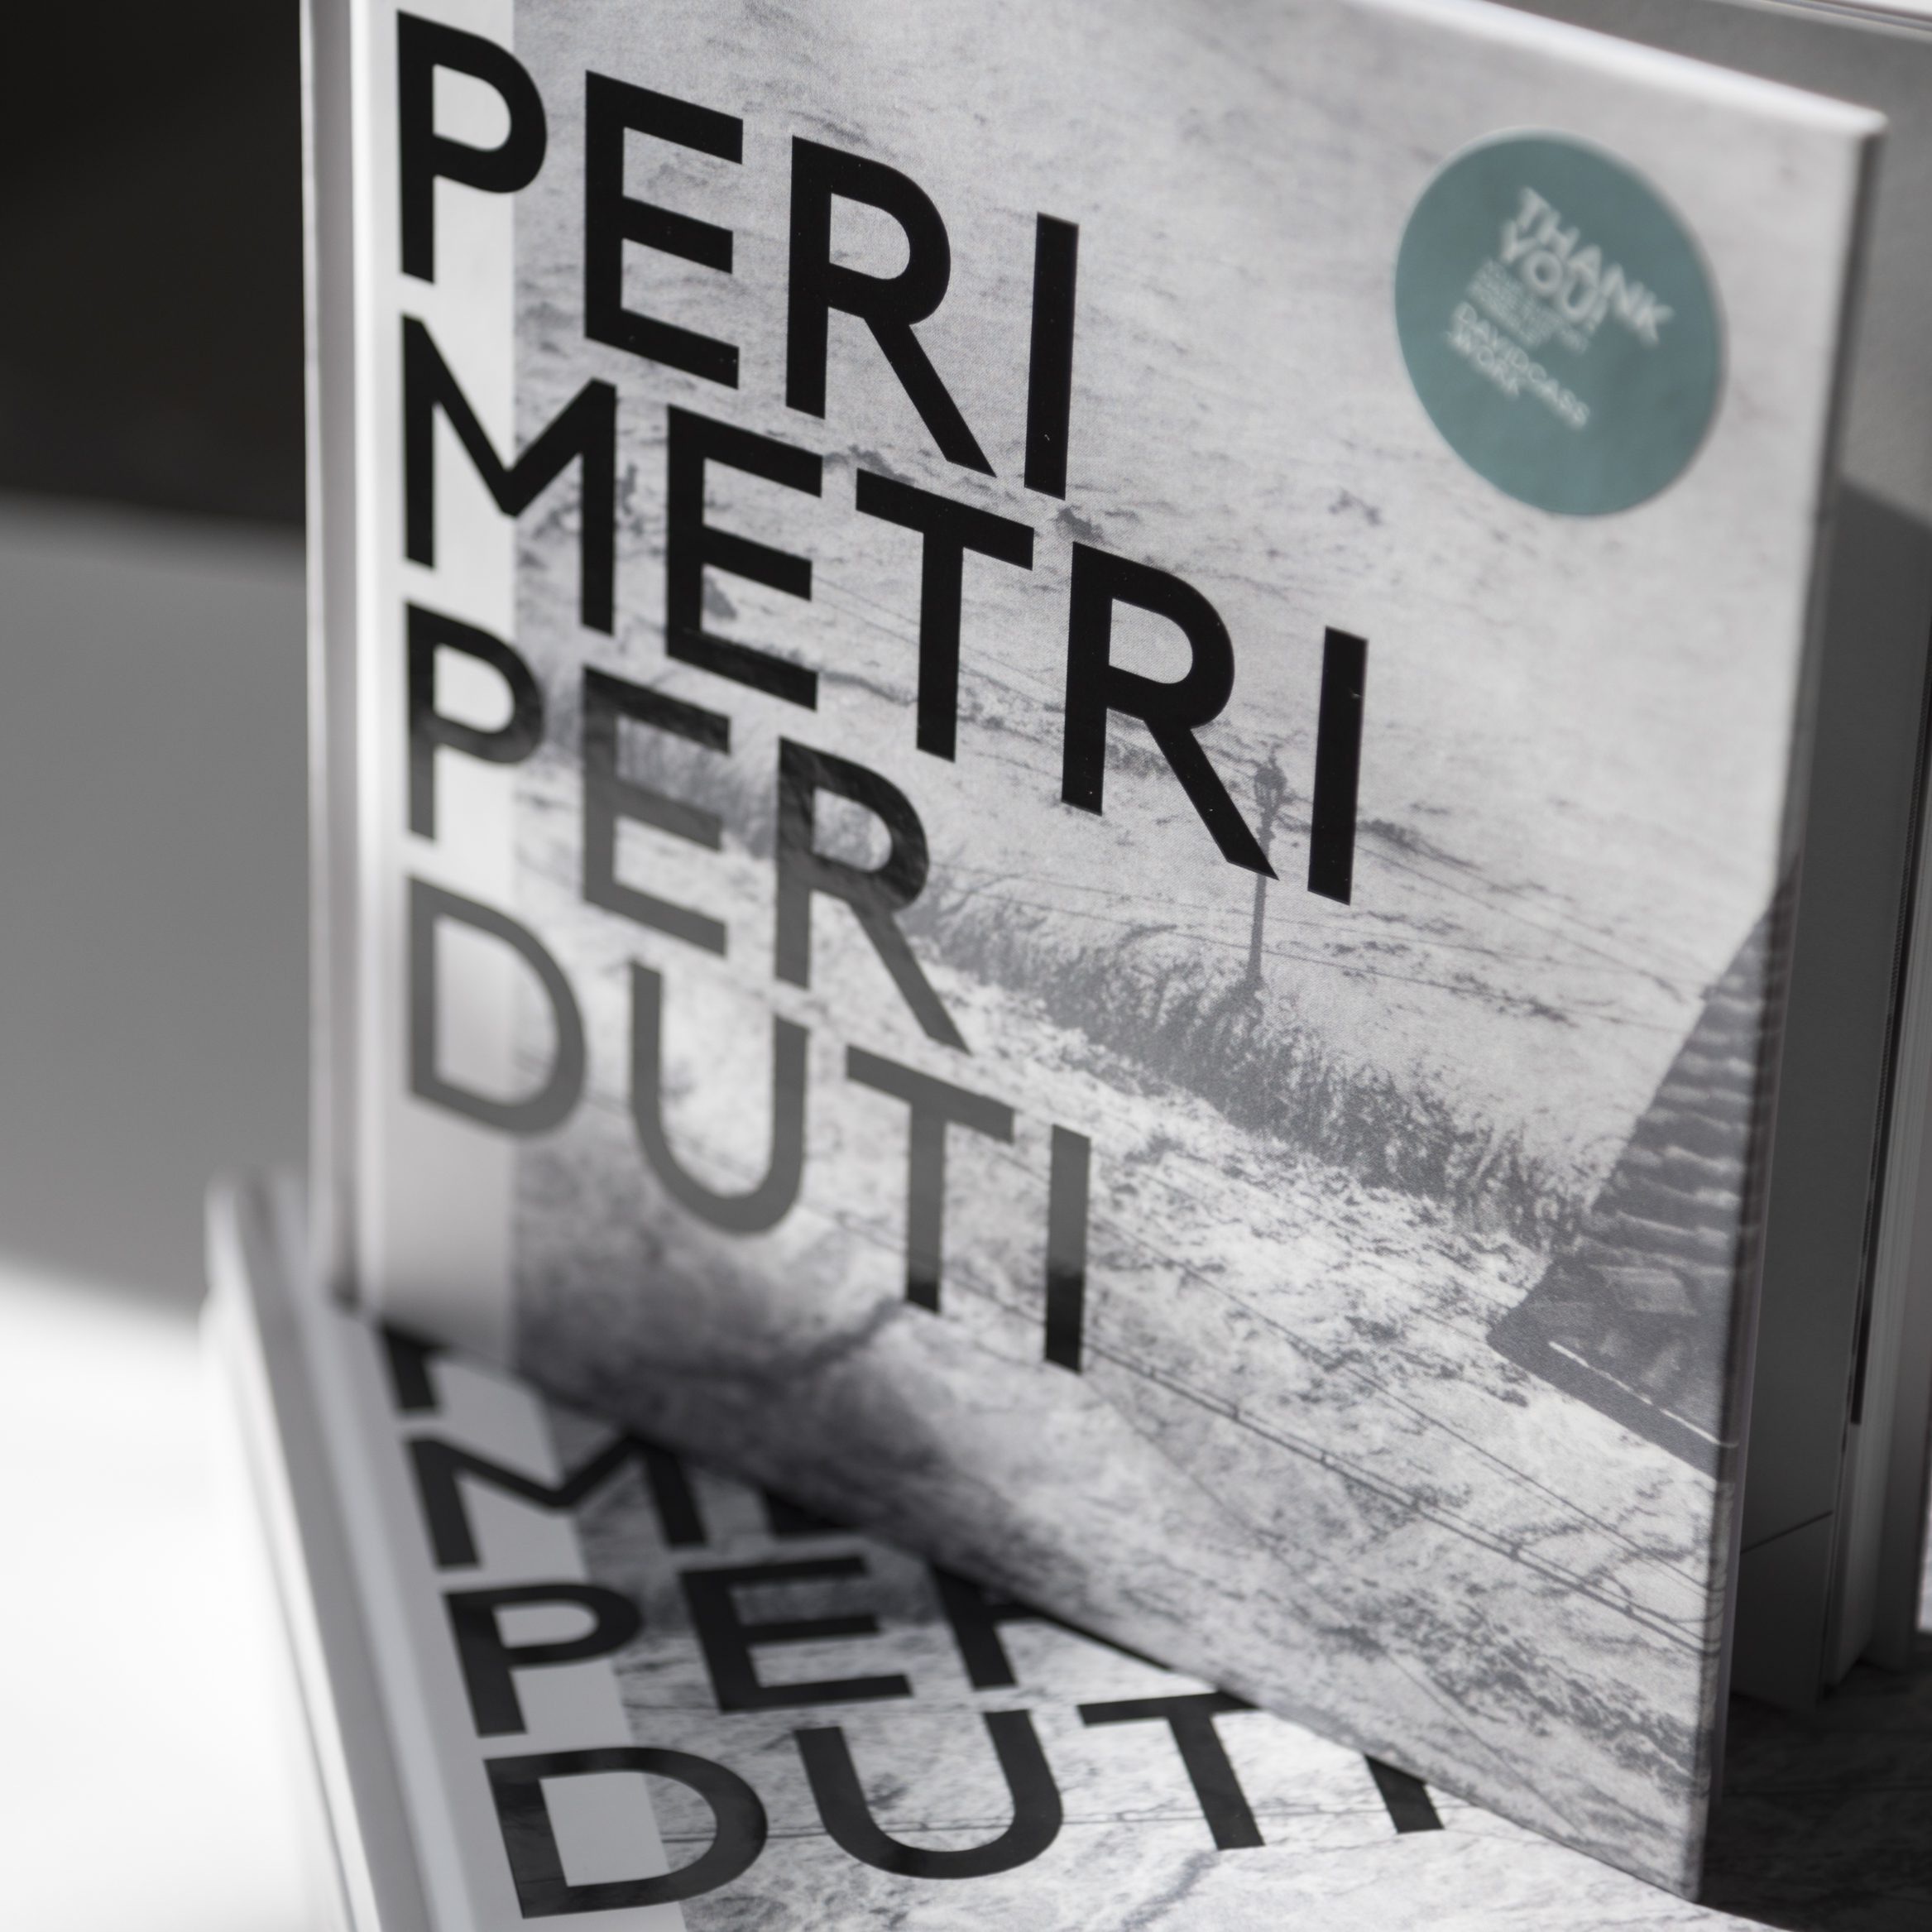 Perimetri Perduti by David Cass